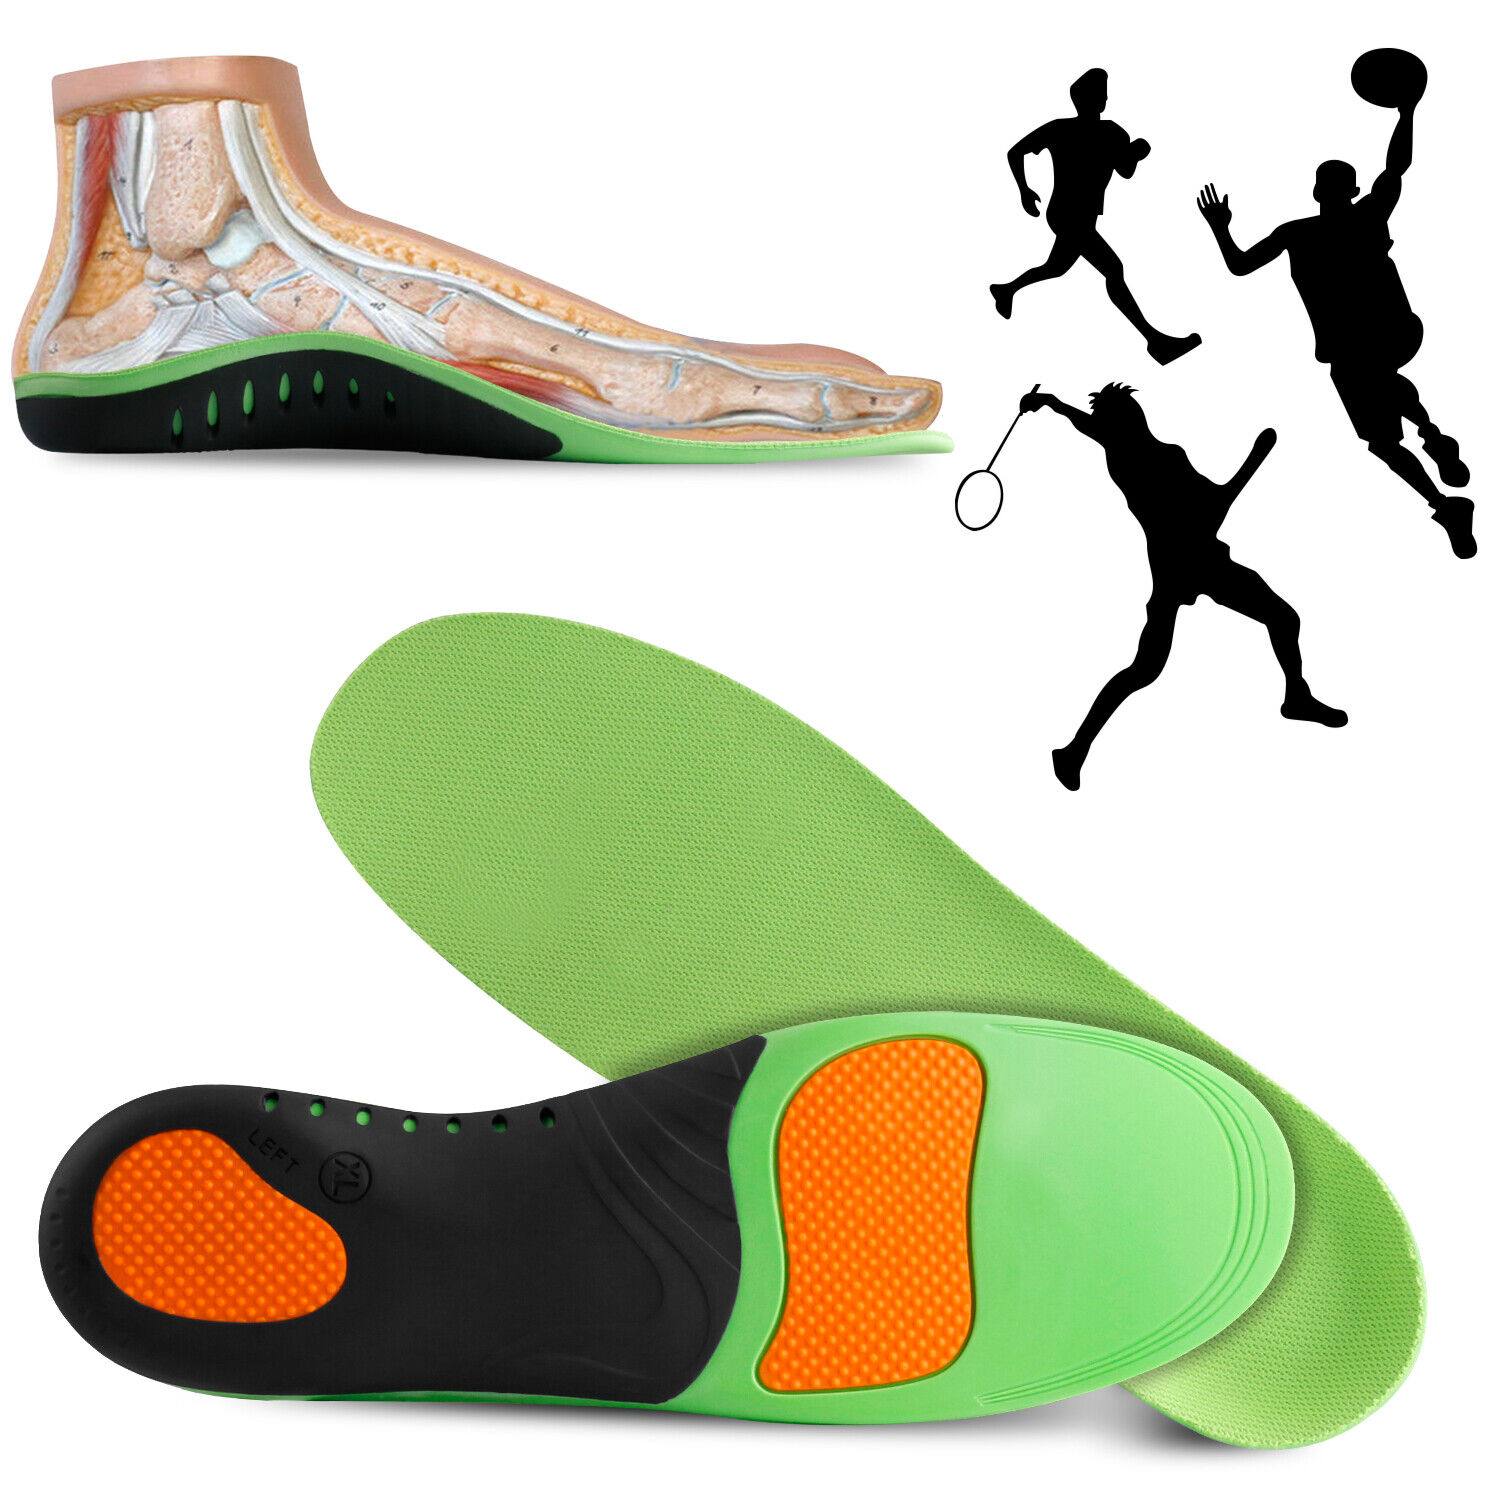 Orthotic Shoe Insoles Arch Support Inserts Plantar Fasciitis